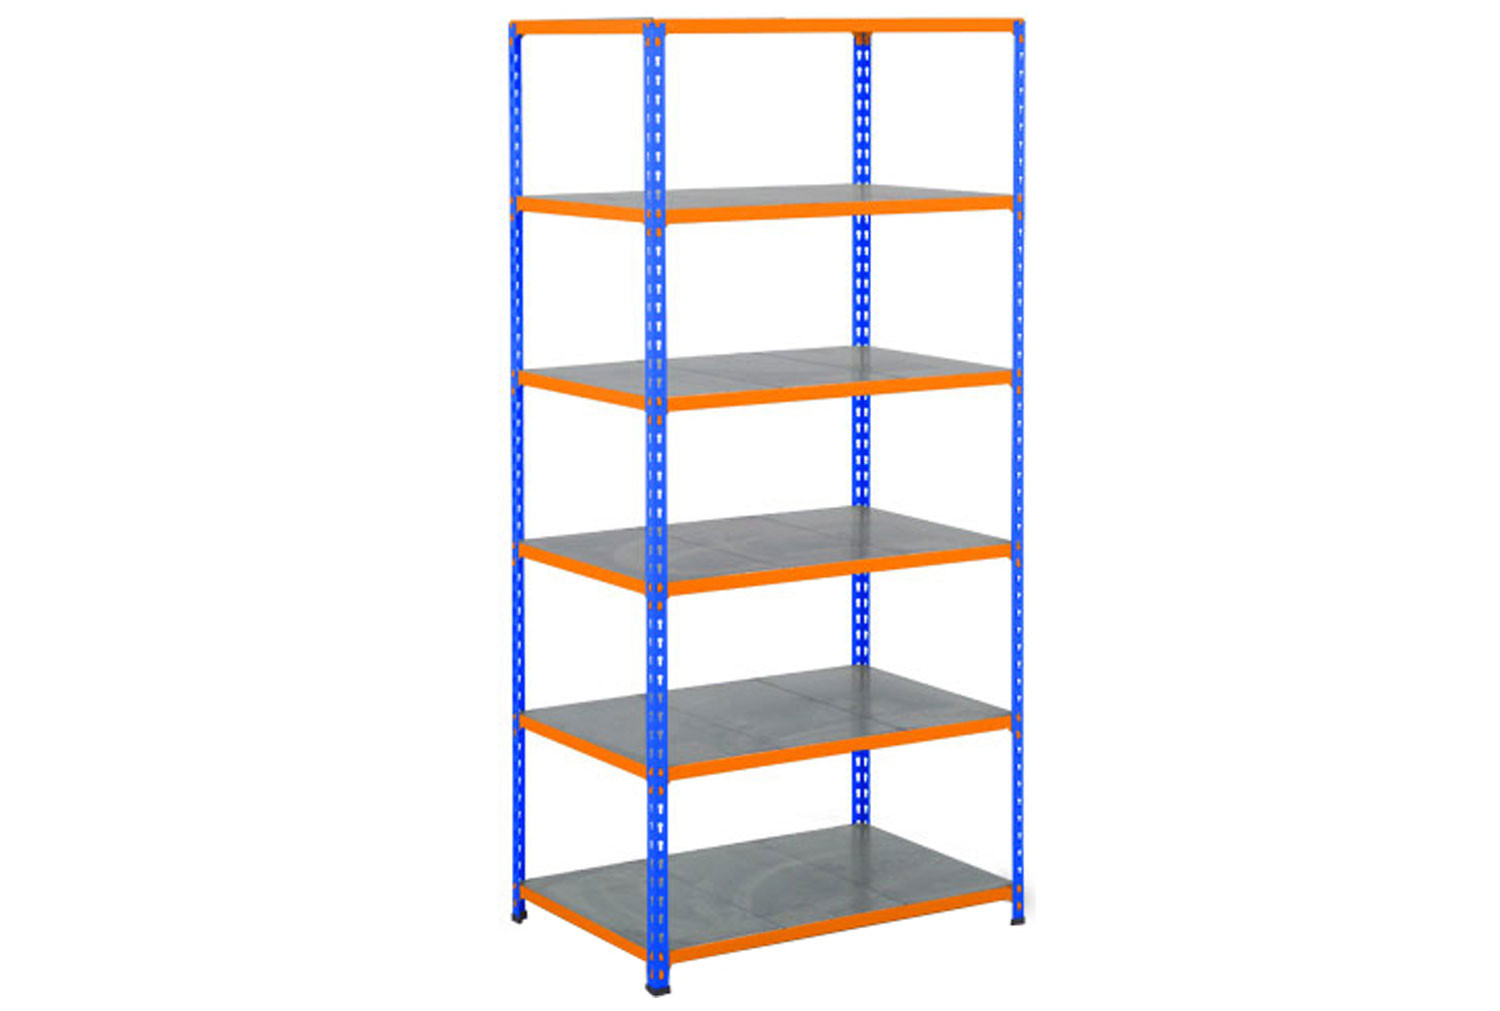 Rapid 2 Shelving With 6 Galvanized Shelves 915Wx1980H (Blue/Orange)